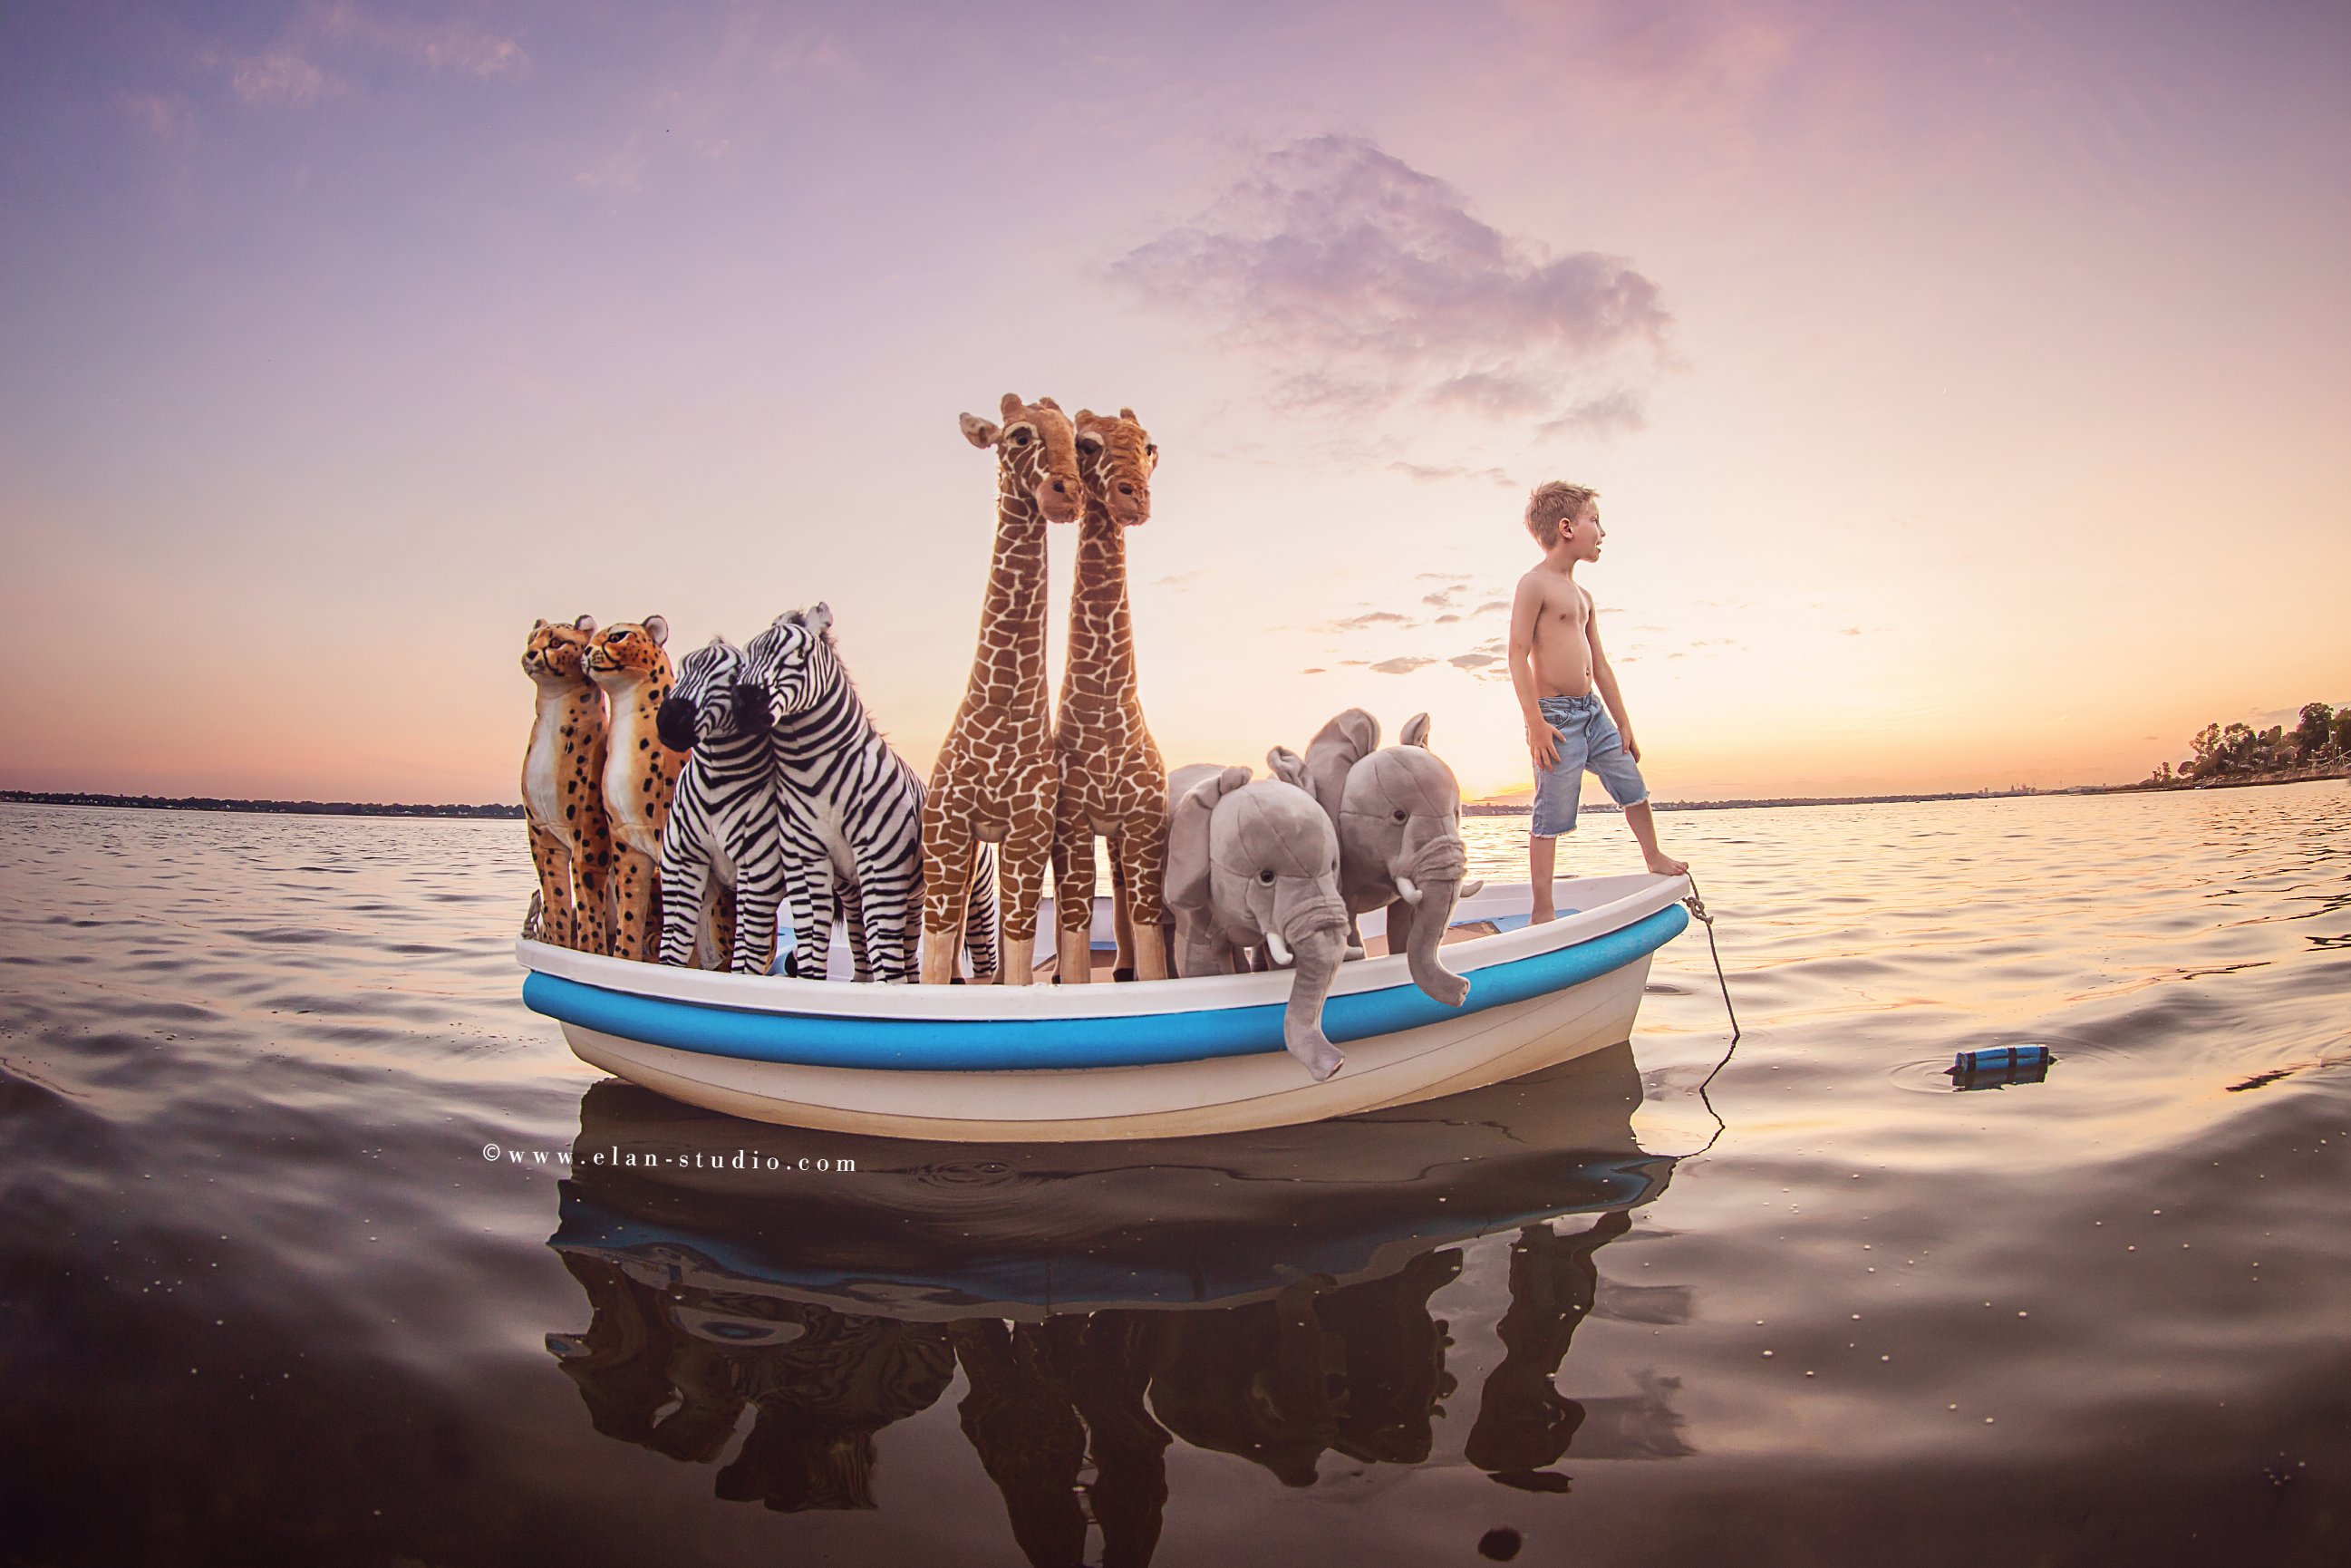 Noah's Ark inspired image with little boy and stuffed animals in boat